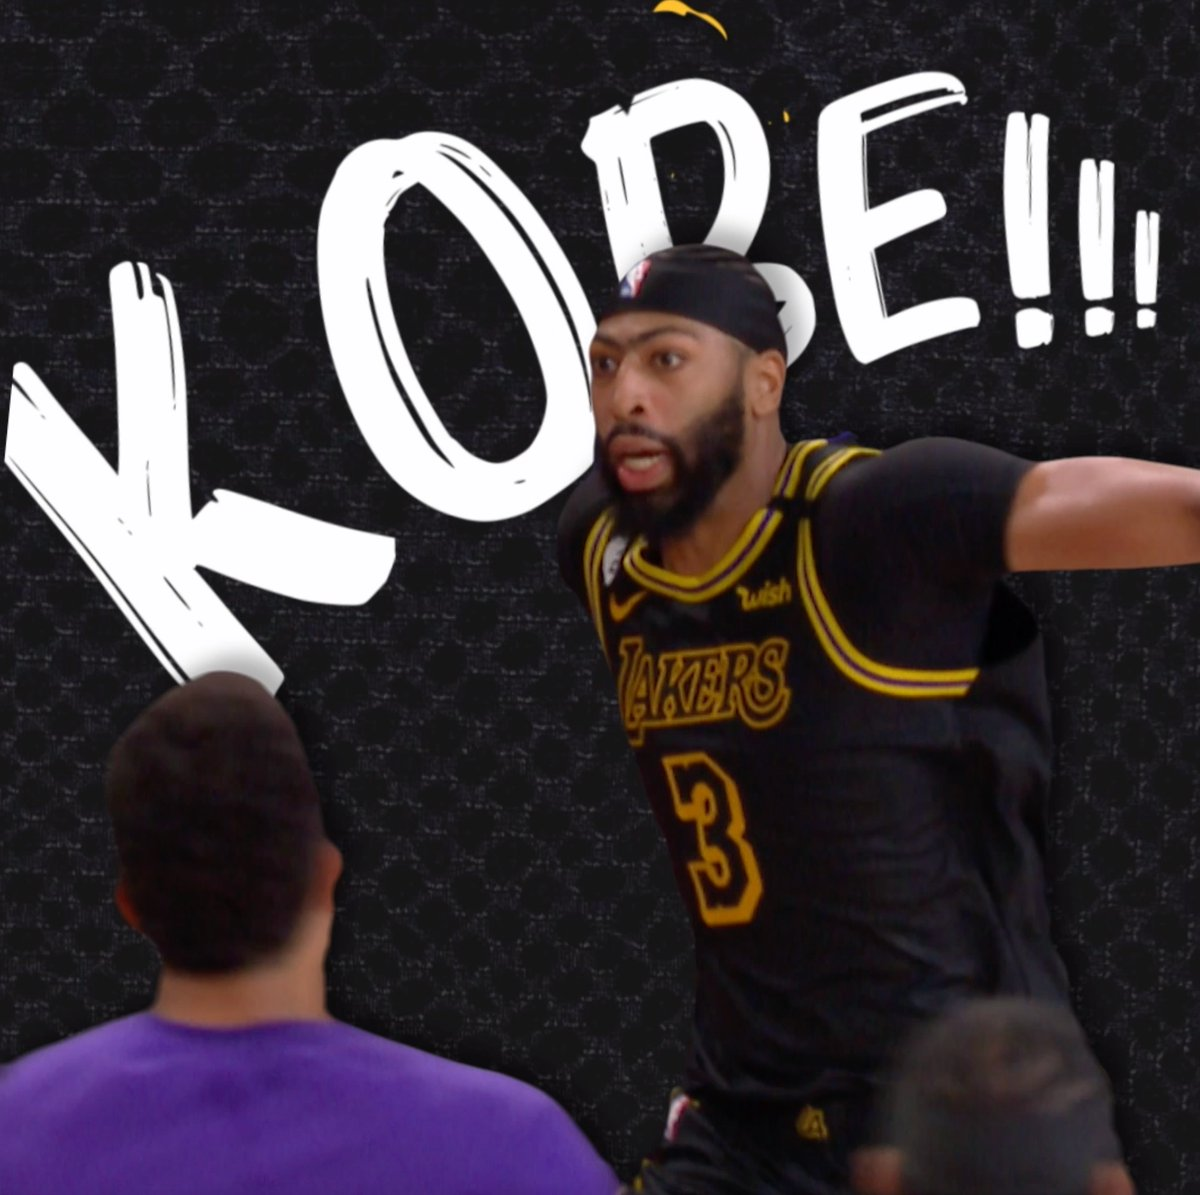 """Only one thing to say after hitting a Mamba shot: """"KOBE"""" https://t.co/6K18dAz2ni"""